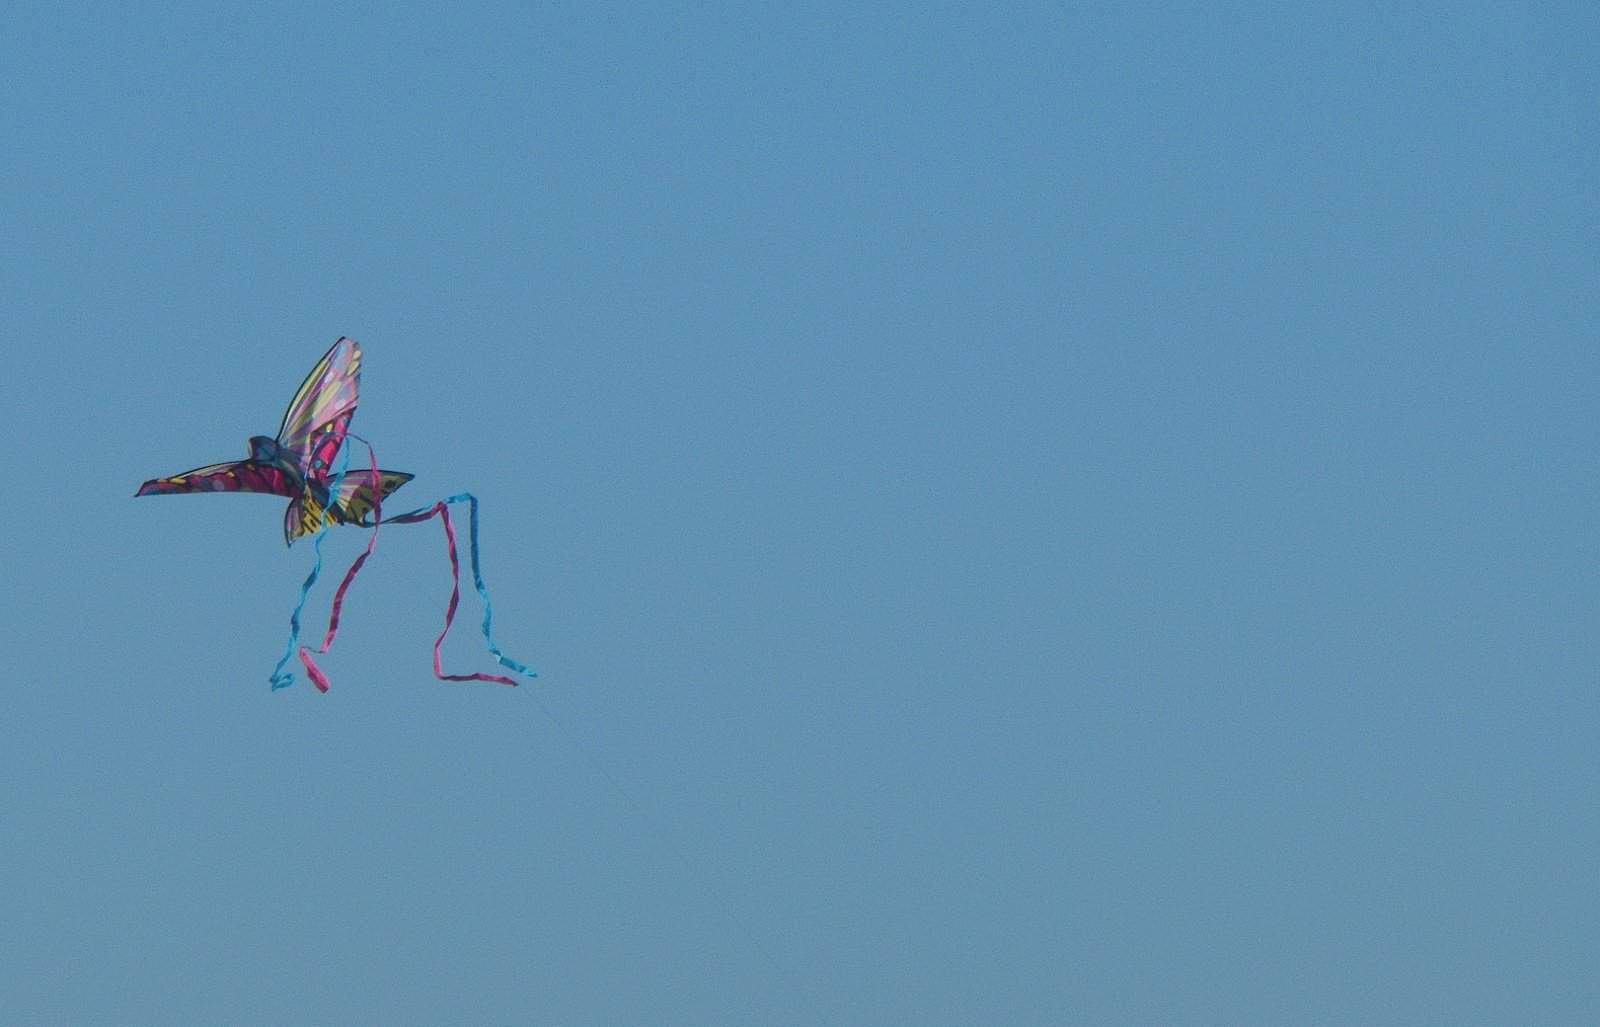 A kite flying against an unbroken blue sky